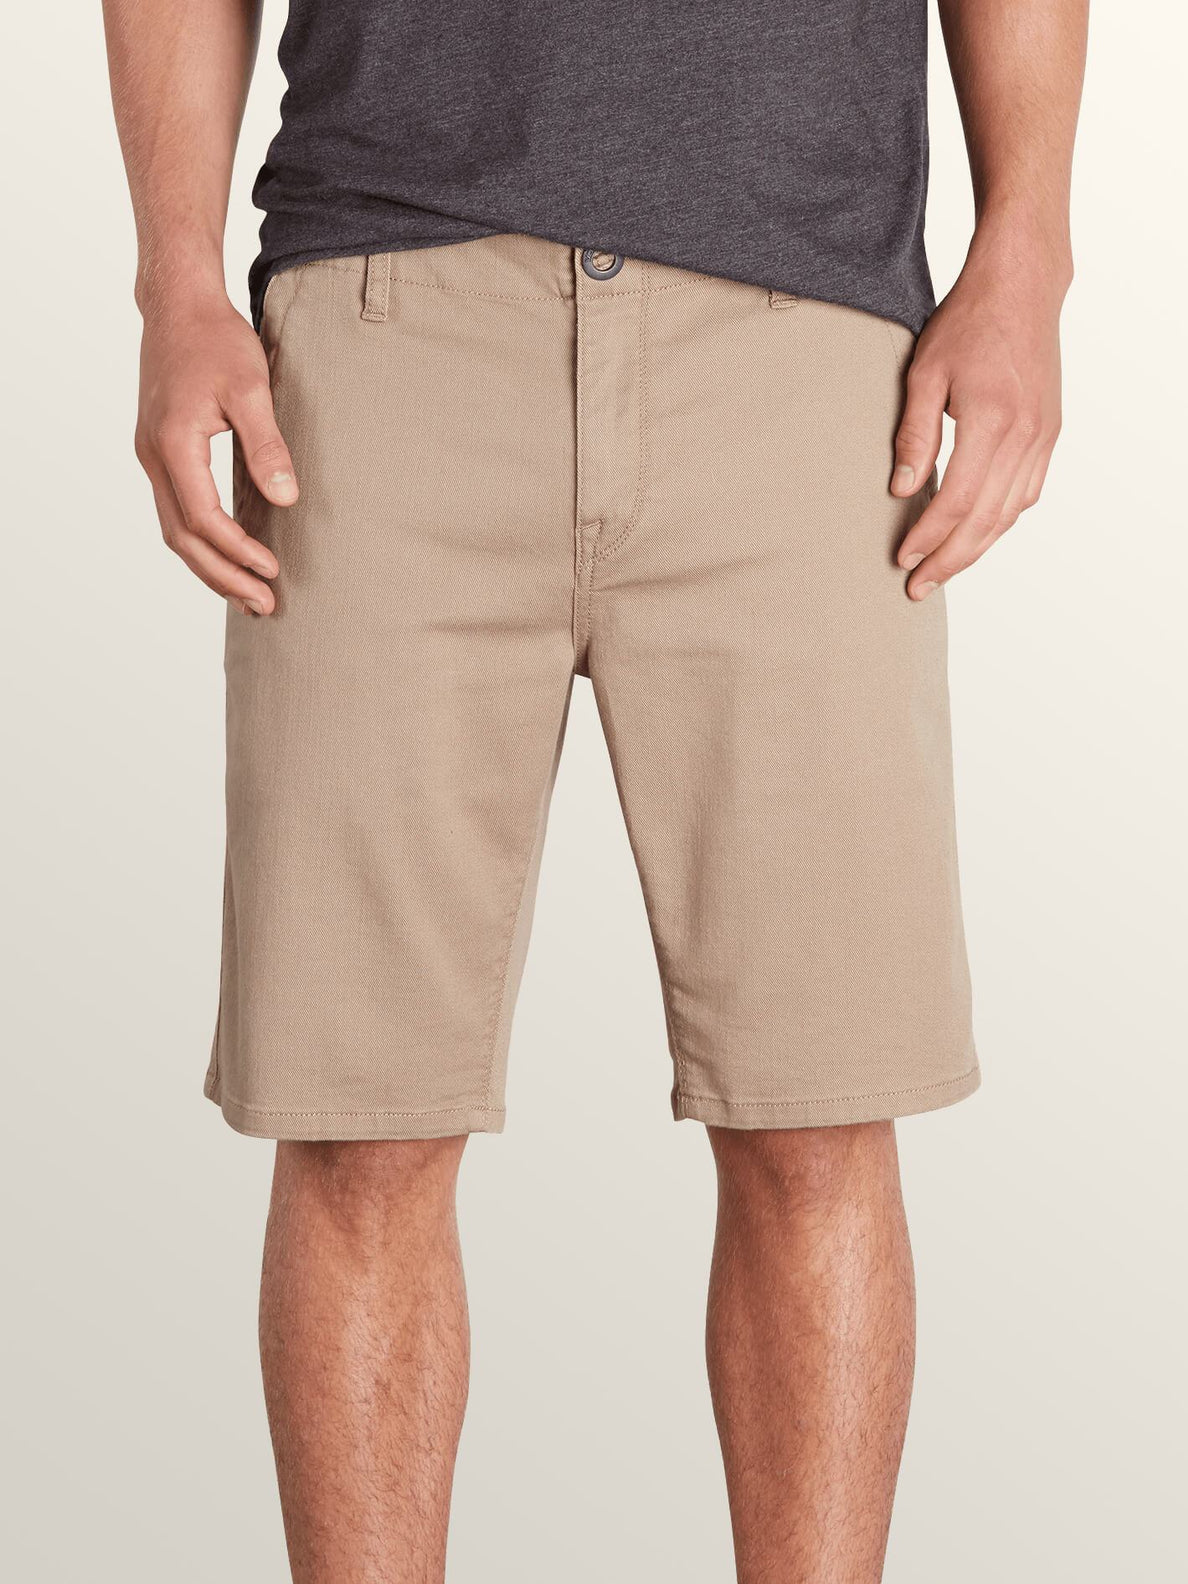 Vsm Prowler Shorts In Khaki, Front View